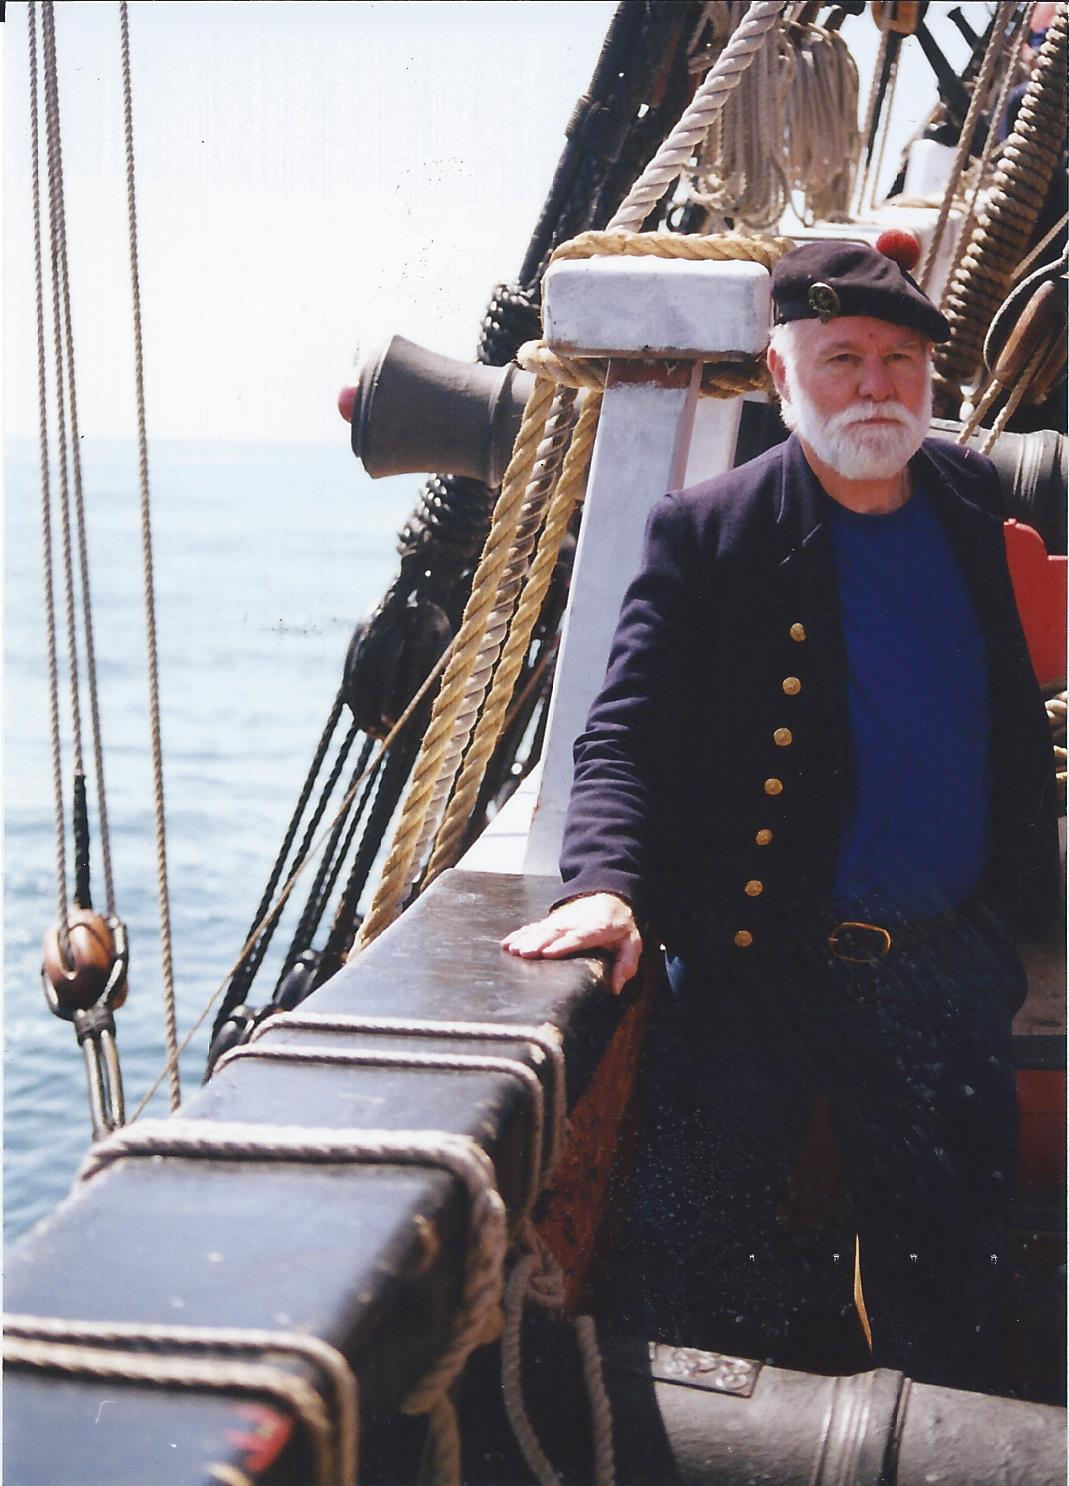 Baron Thomas (1941 -)has spent a lifetime sailing on schooners, Baltimore clippers, brigantines, barkentines, ketches and sloops, and has also traversed the globe on research vessels with Scripps Oceanography. Baron has been a shipwright and ship's cannoneer to boot.